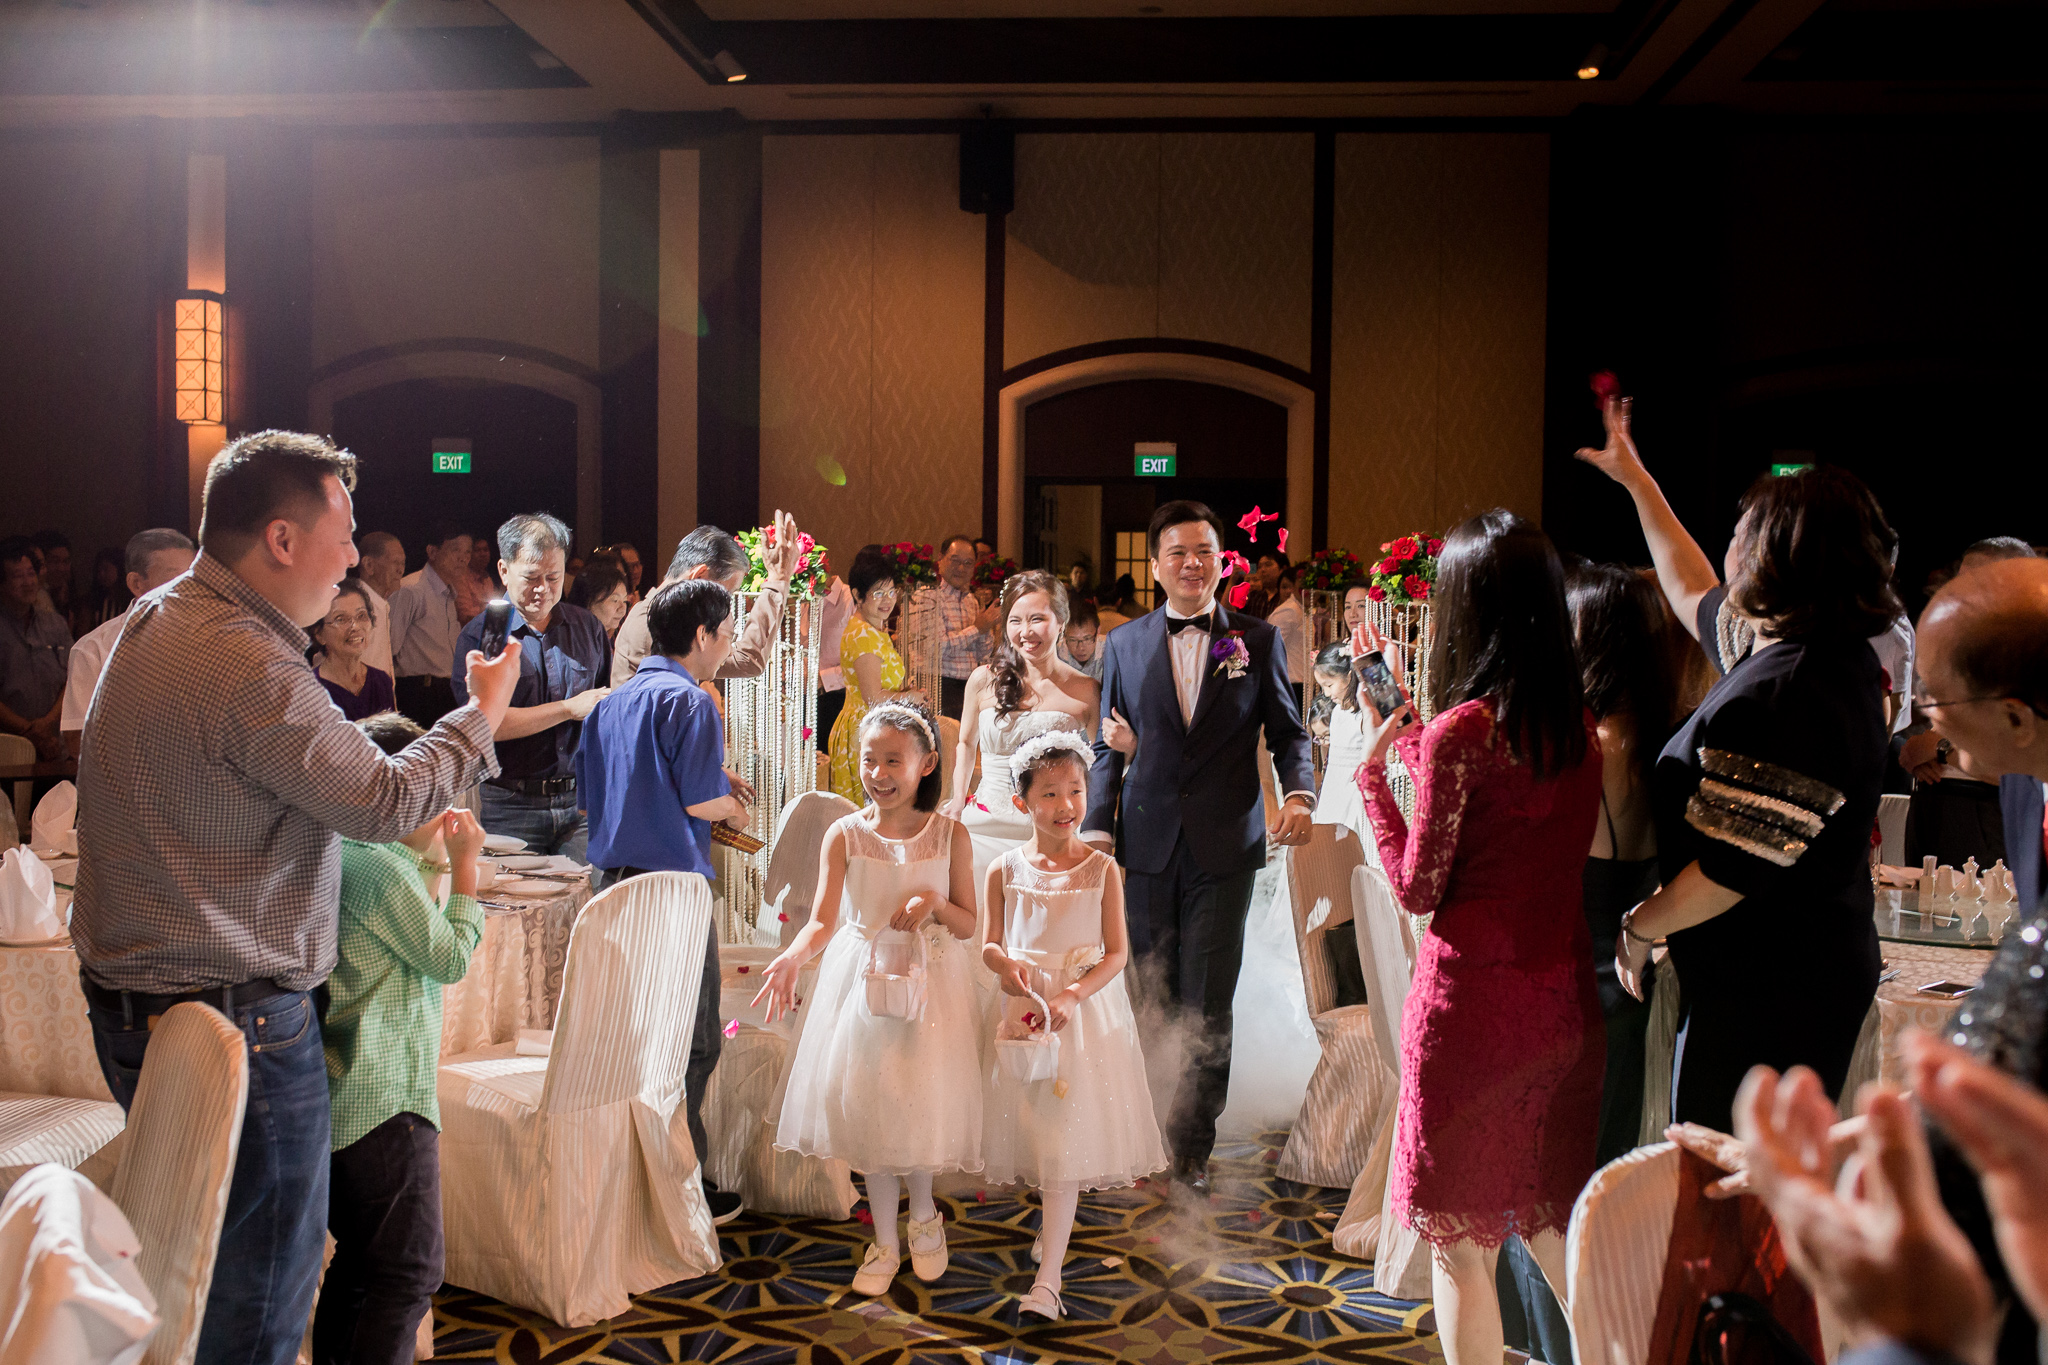 Shiwei & Chee Chin Wedding Day Highlights (resized for sharing) -172.jpg